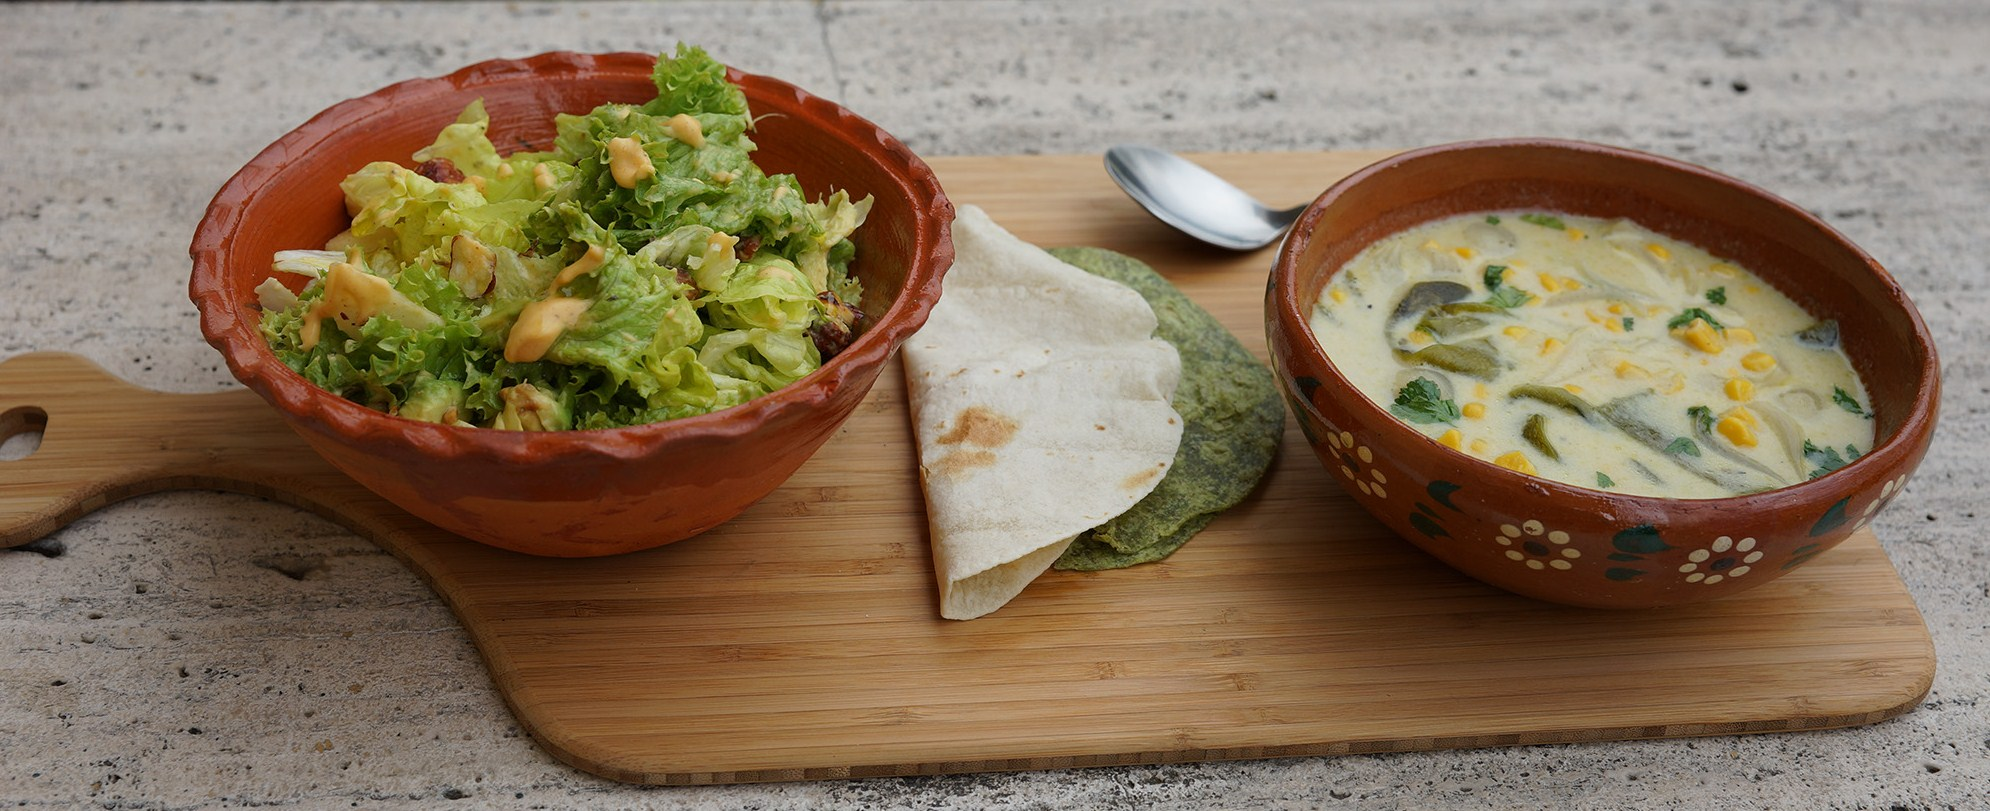 Green salad with Guava vinaigrette & Corn and Roasted Poblano Soup